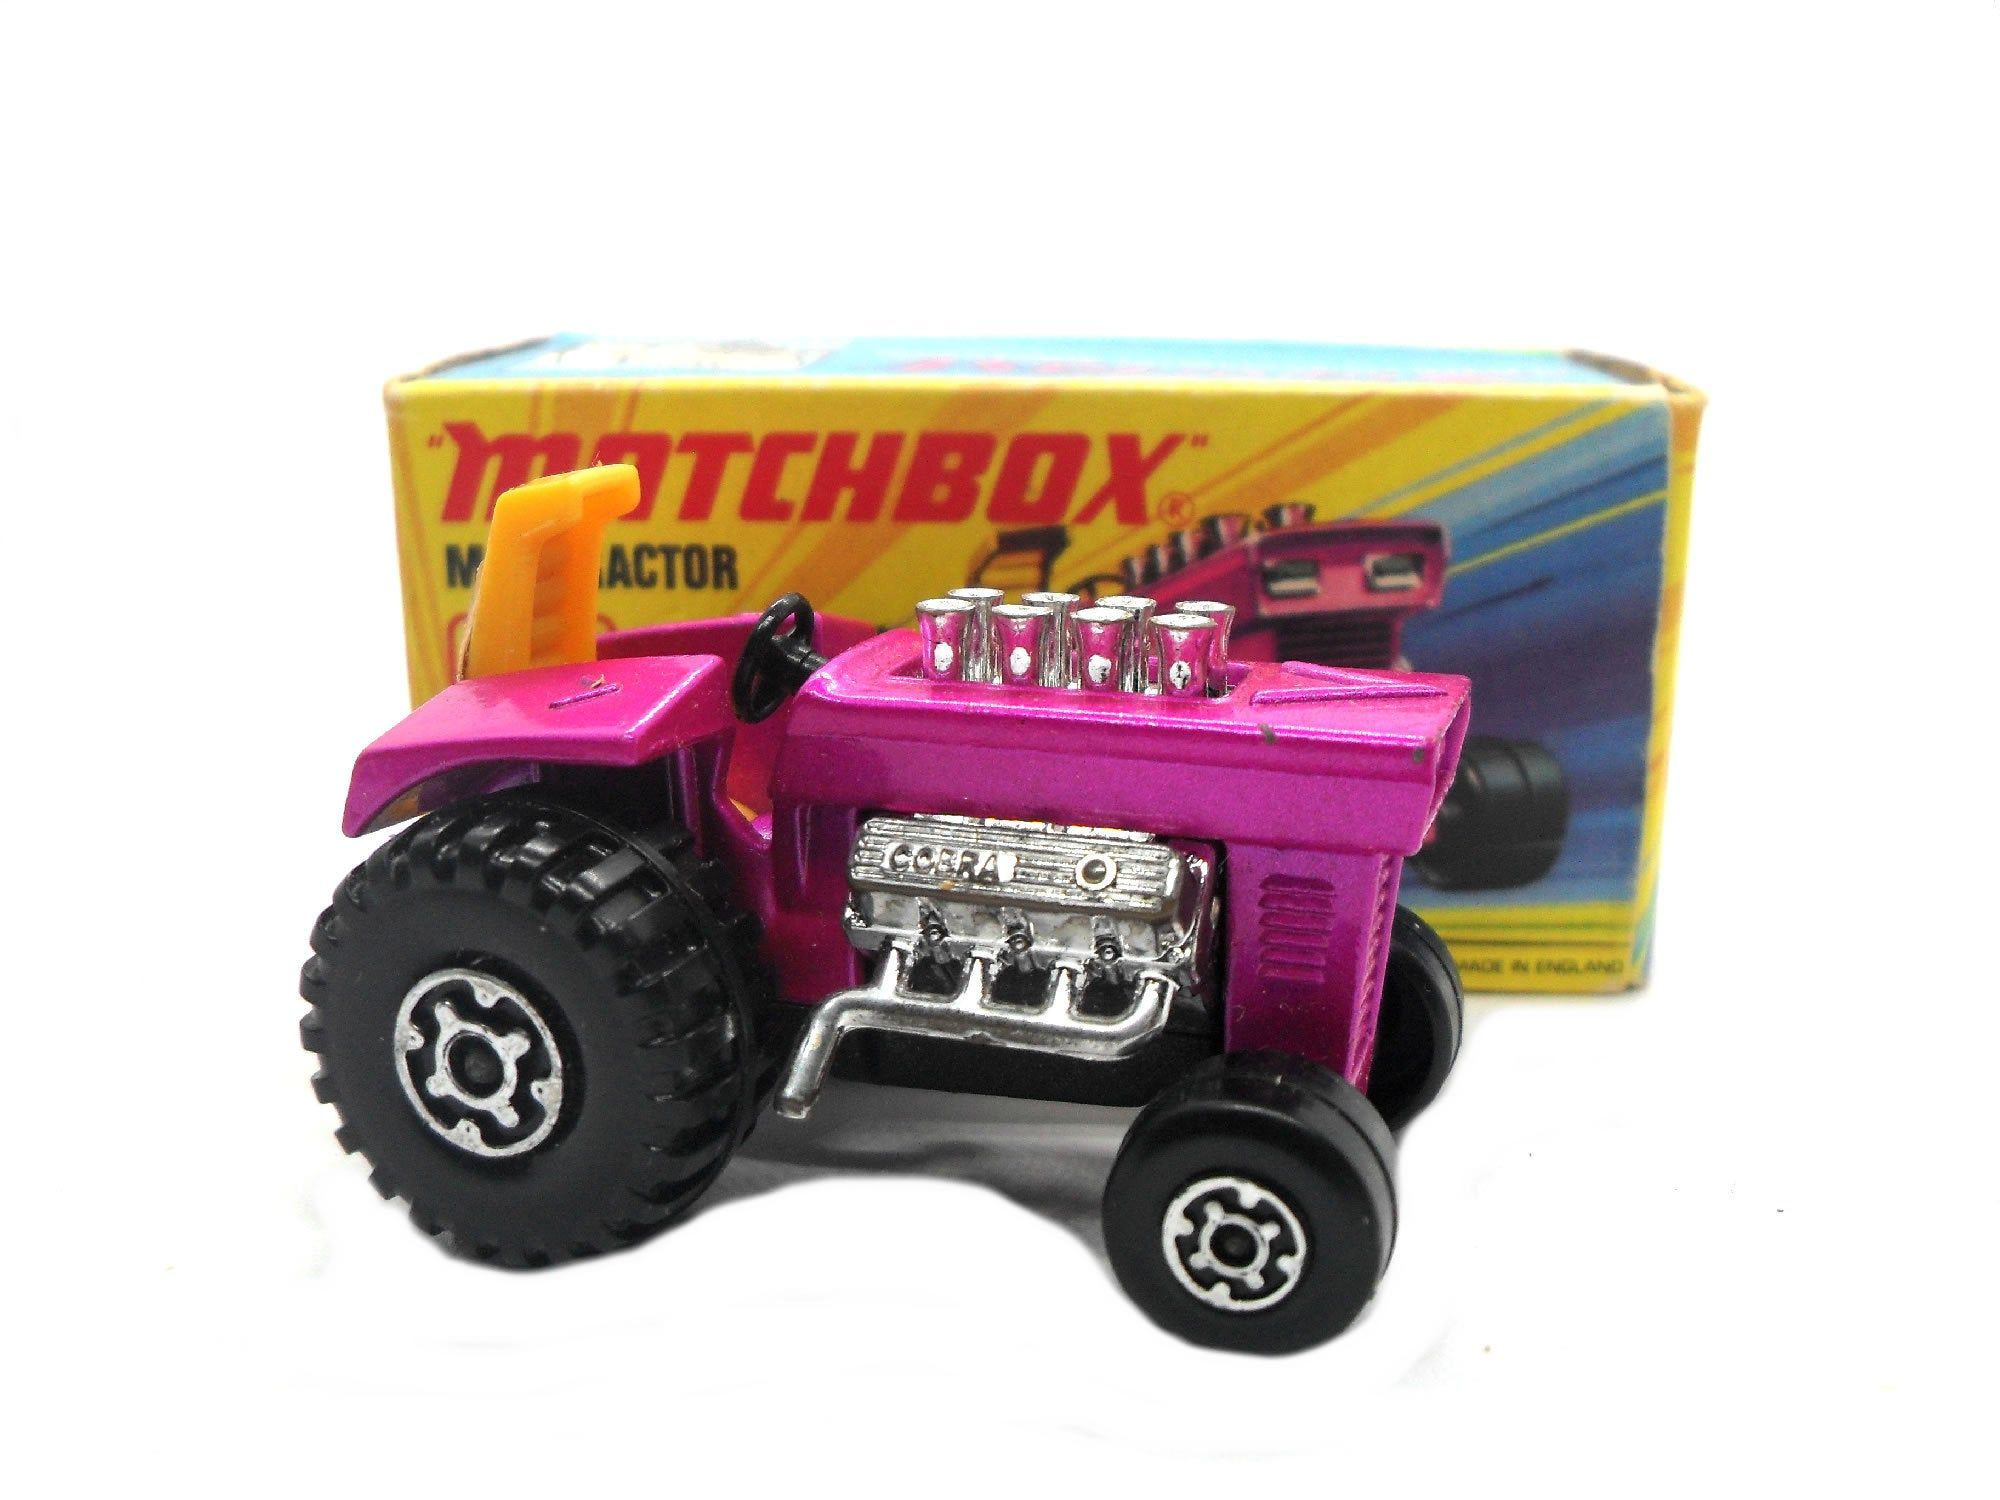 1970s Vintage Matchbox 25d Superfast Mod Tractor toy